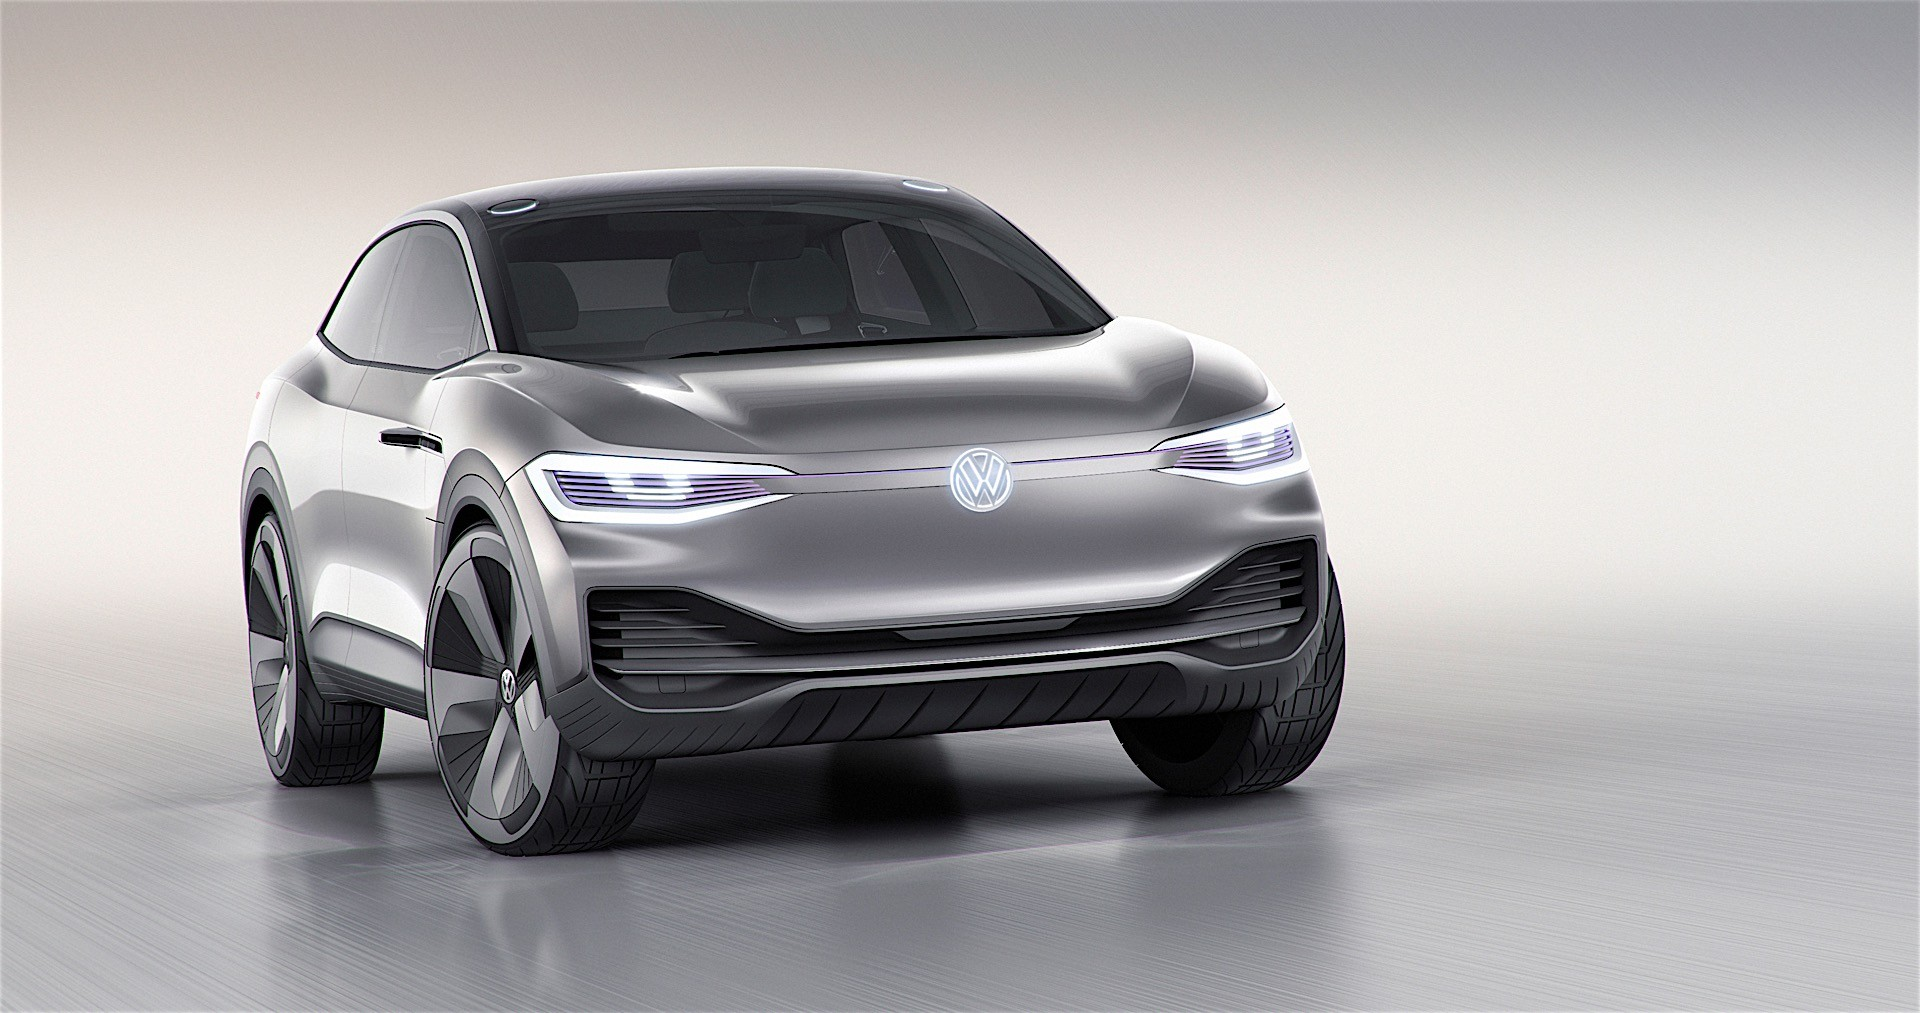 Vw S I D Crozz Electric Crossover Launch Might Skip Ahead One Year To 2019